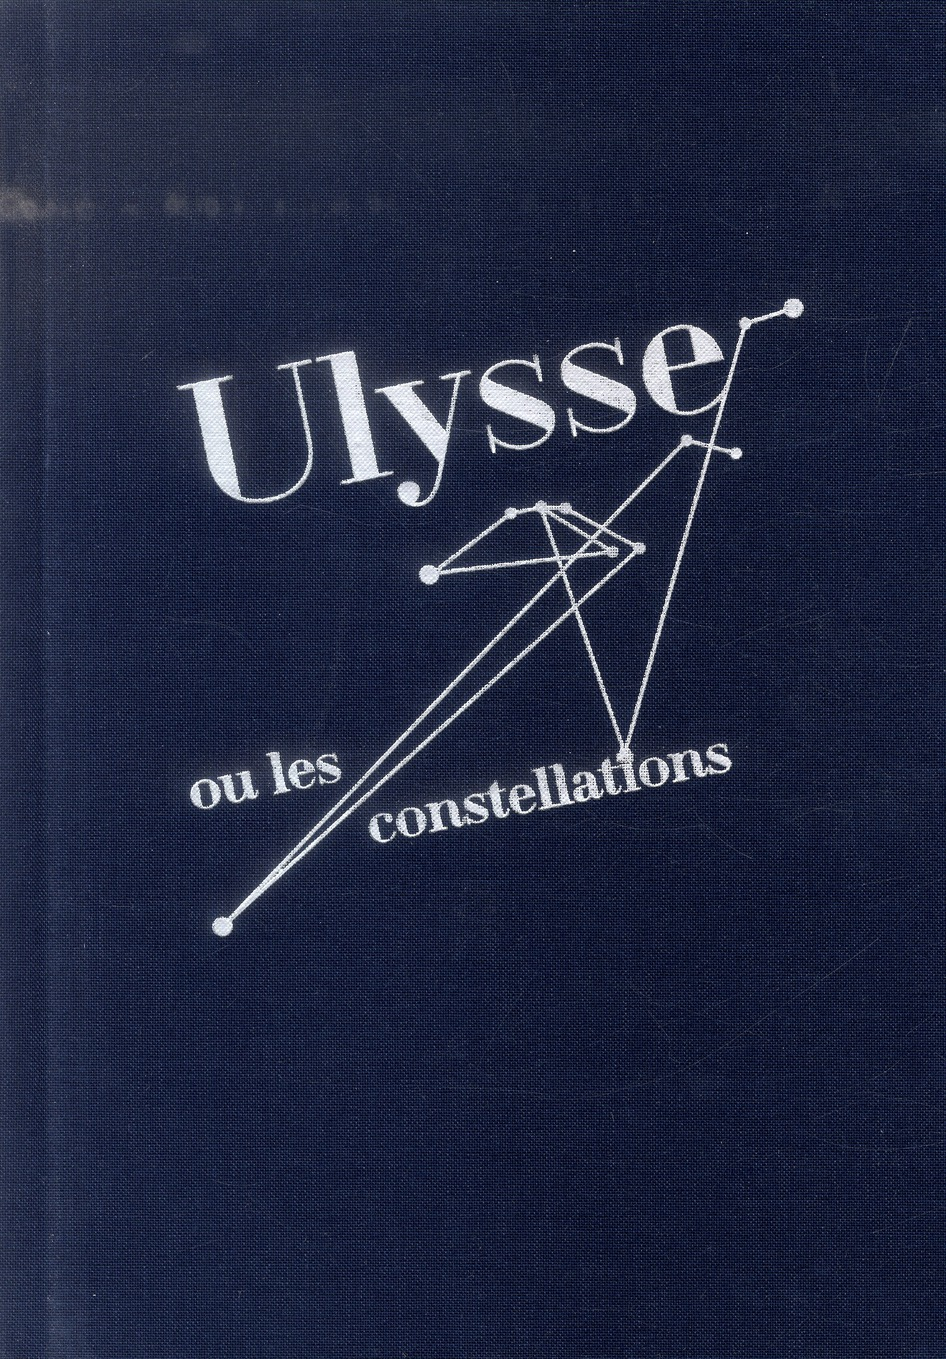 ULYSSE OU LES CONSTELLATIONS